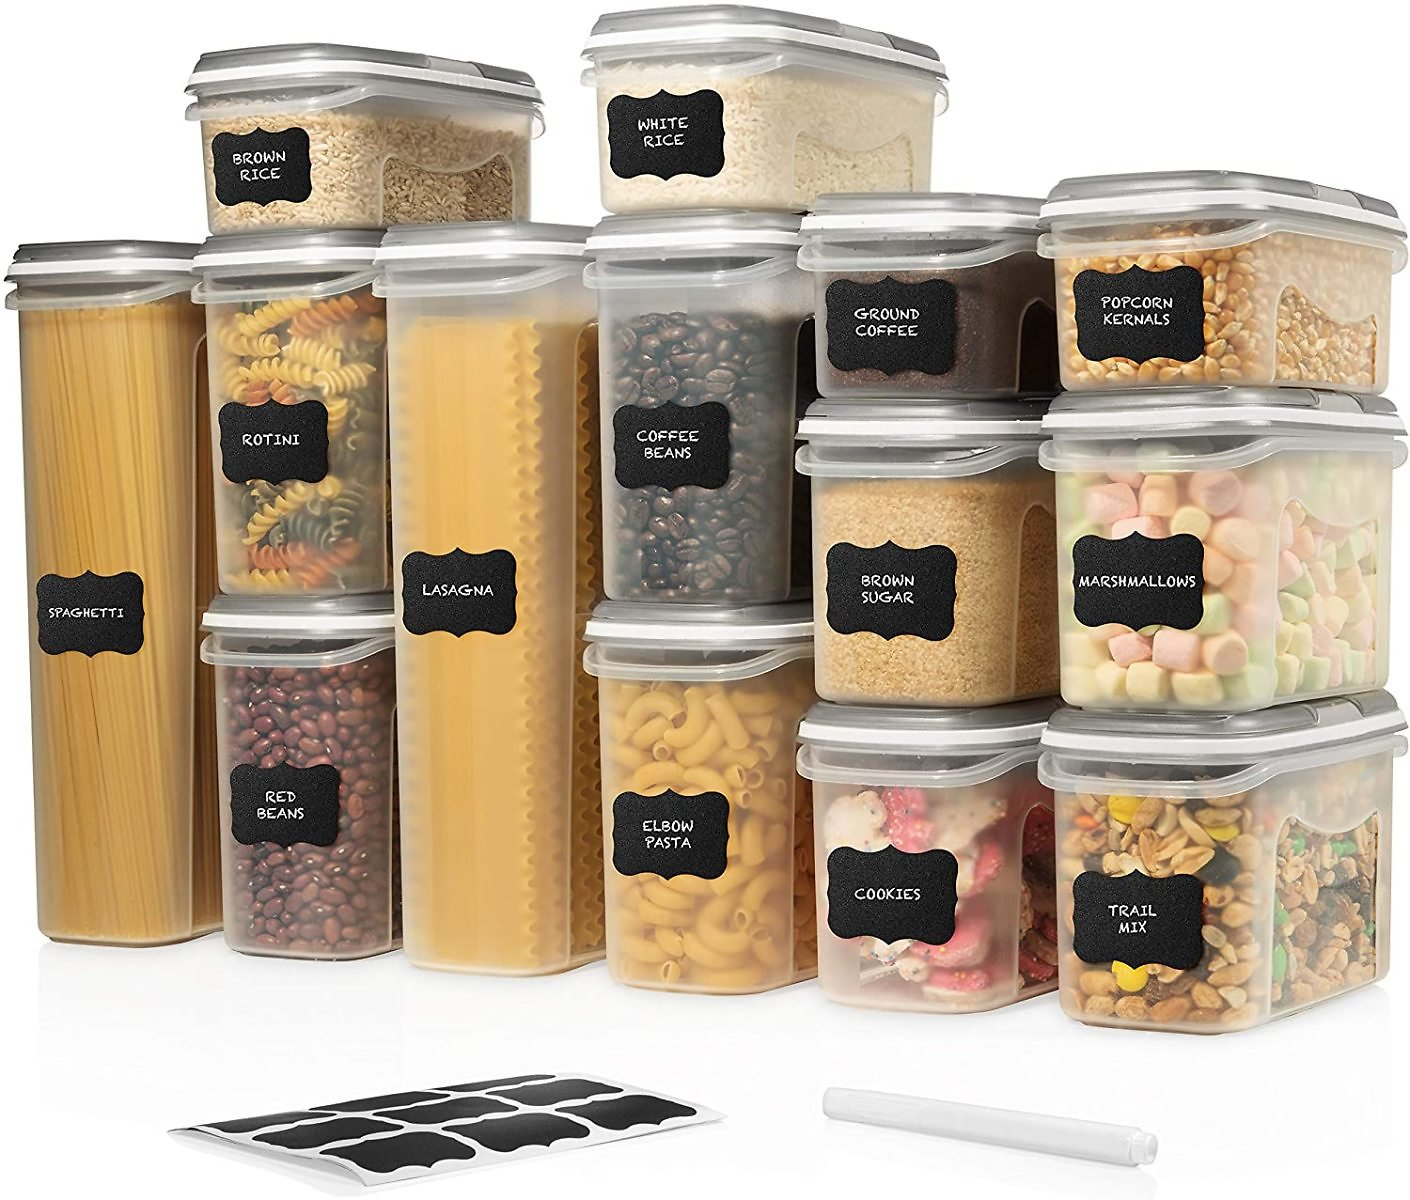 Airtight Food Storage Containers with Lids (14 Container Set)